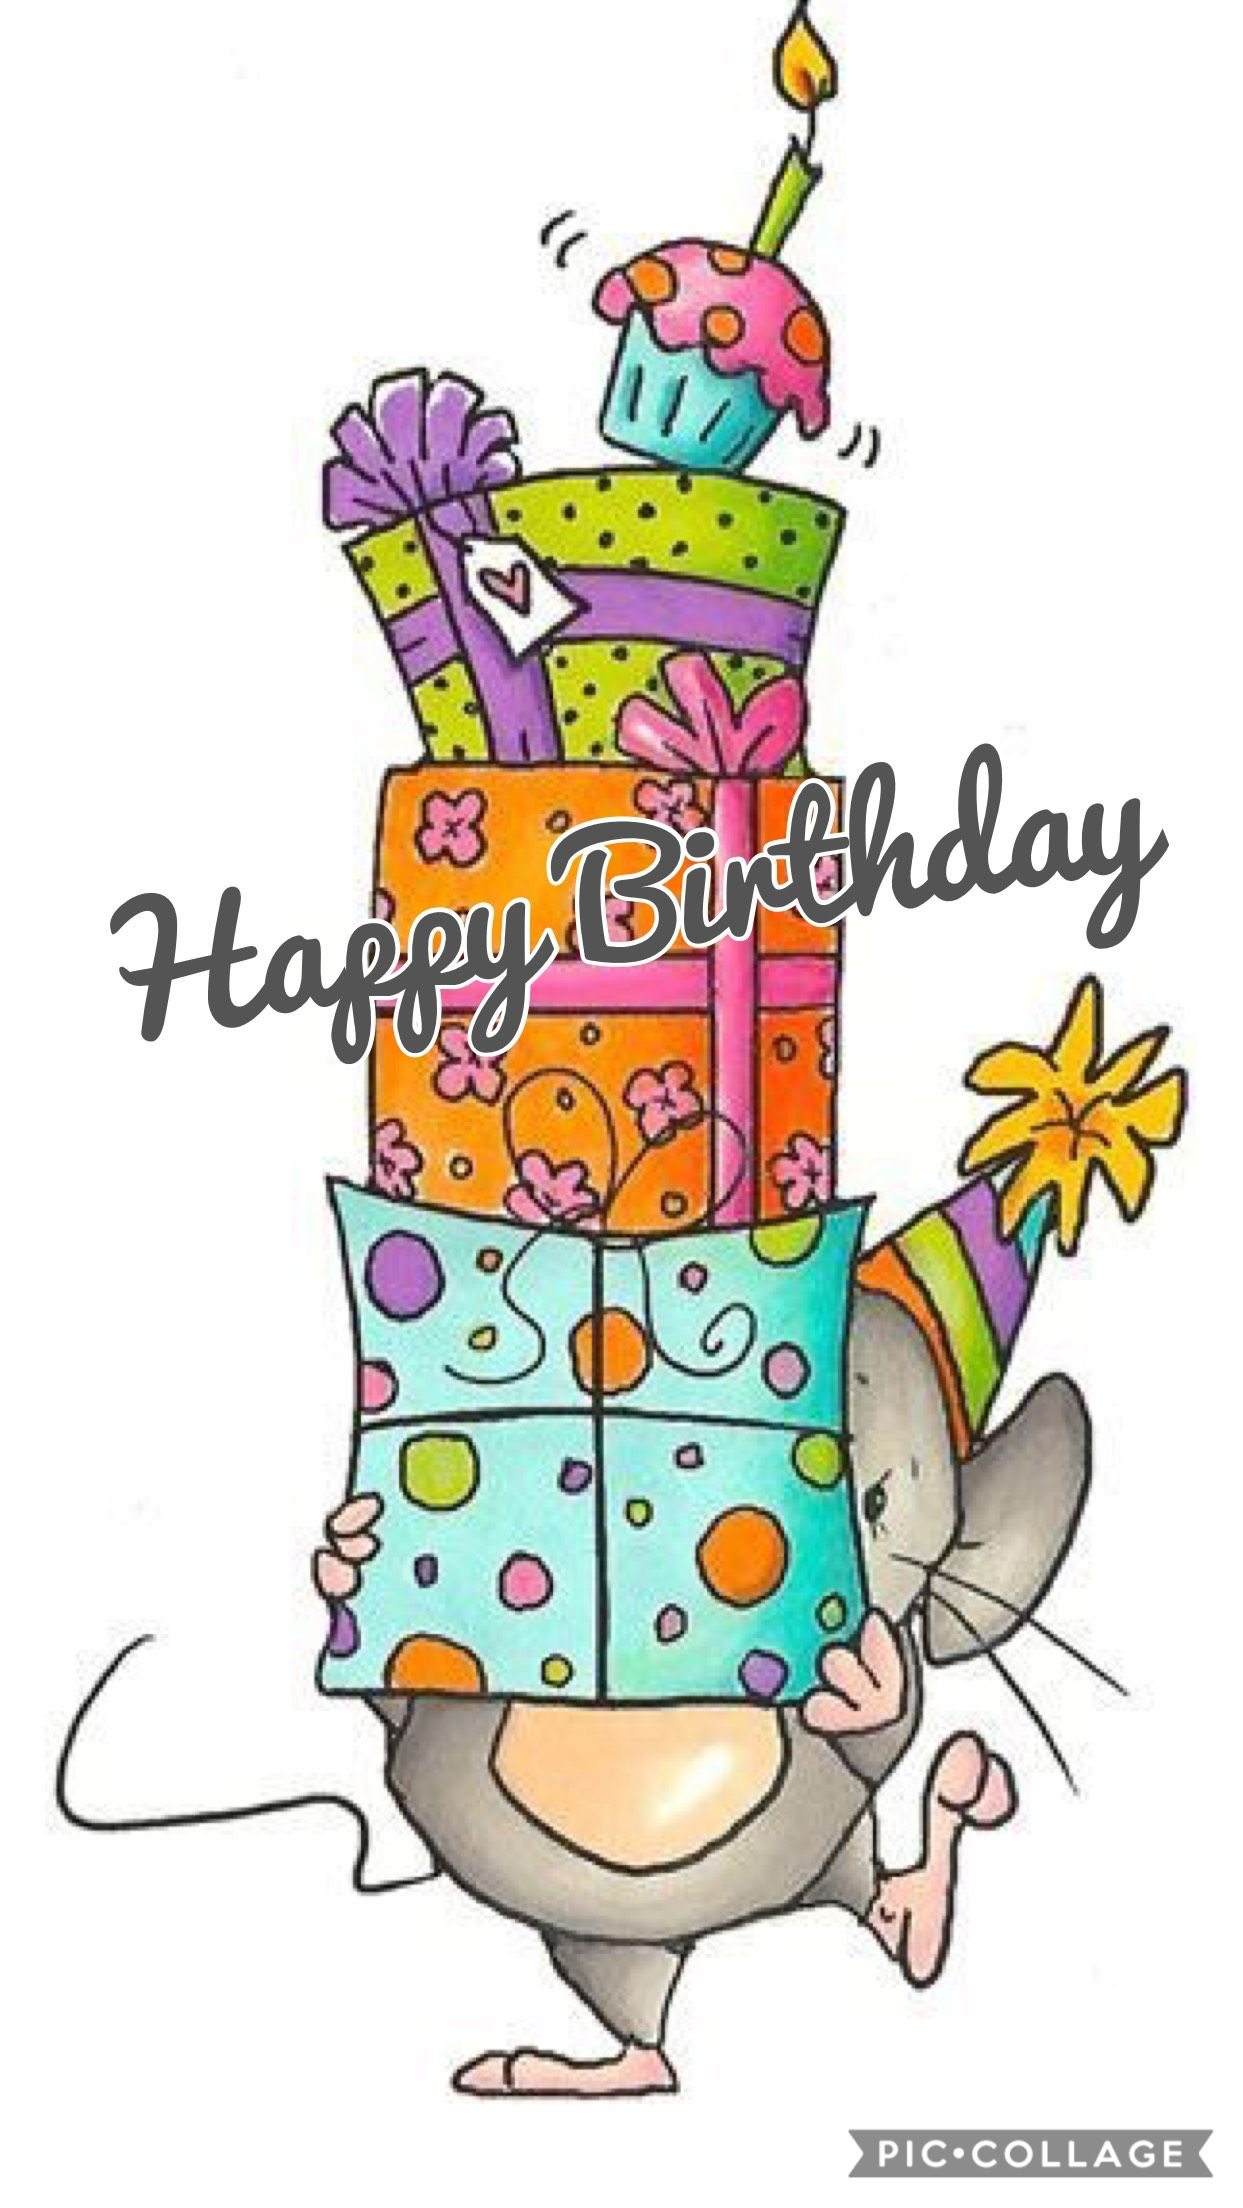 Pin by Akshay Thakur on Happy birthday Pinterest